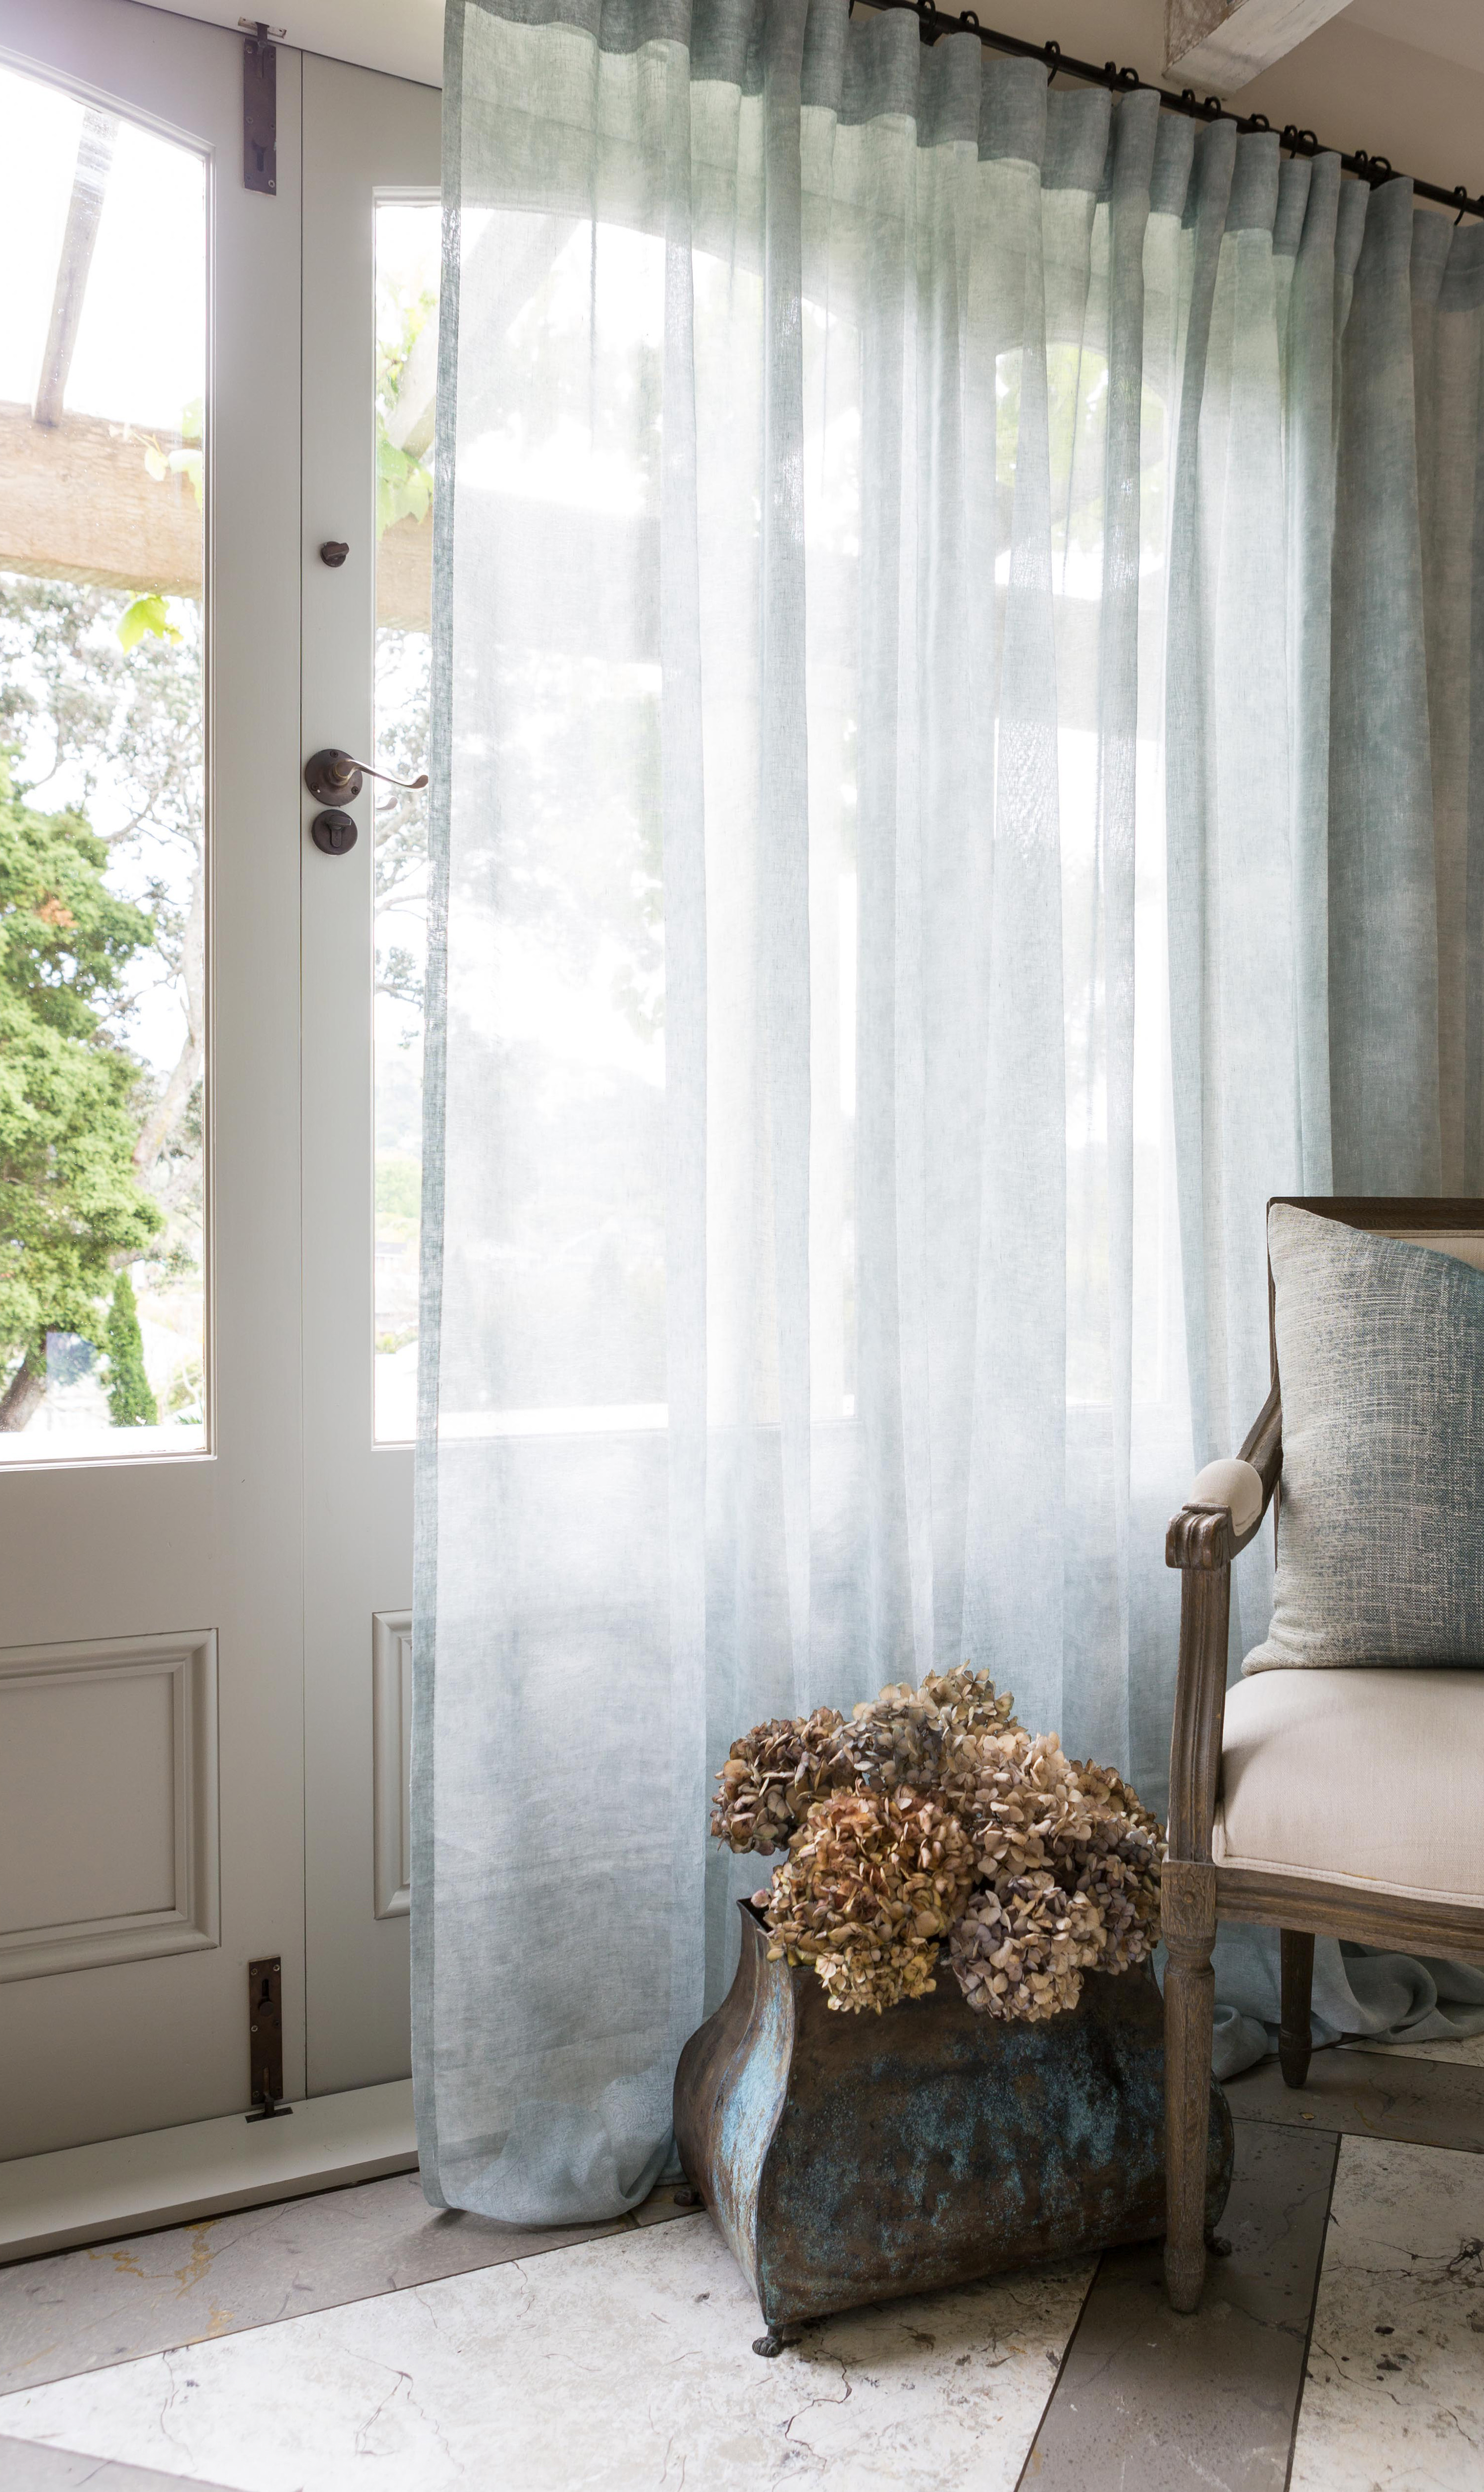 By extending the Curtain Track 10% of the window width either side of the window, when the Curtain is open it will stack onto the wall and not encroach over ...